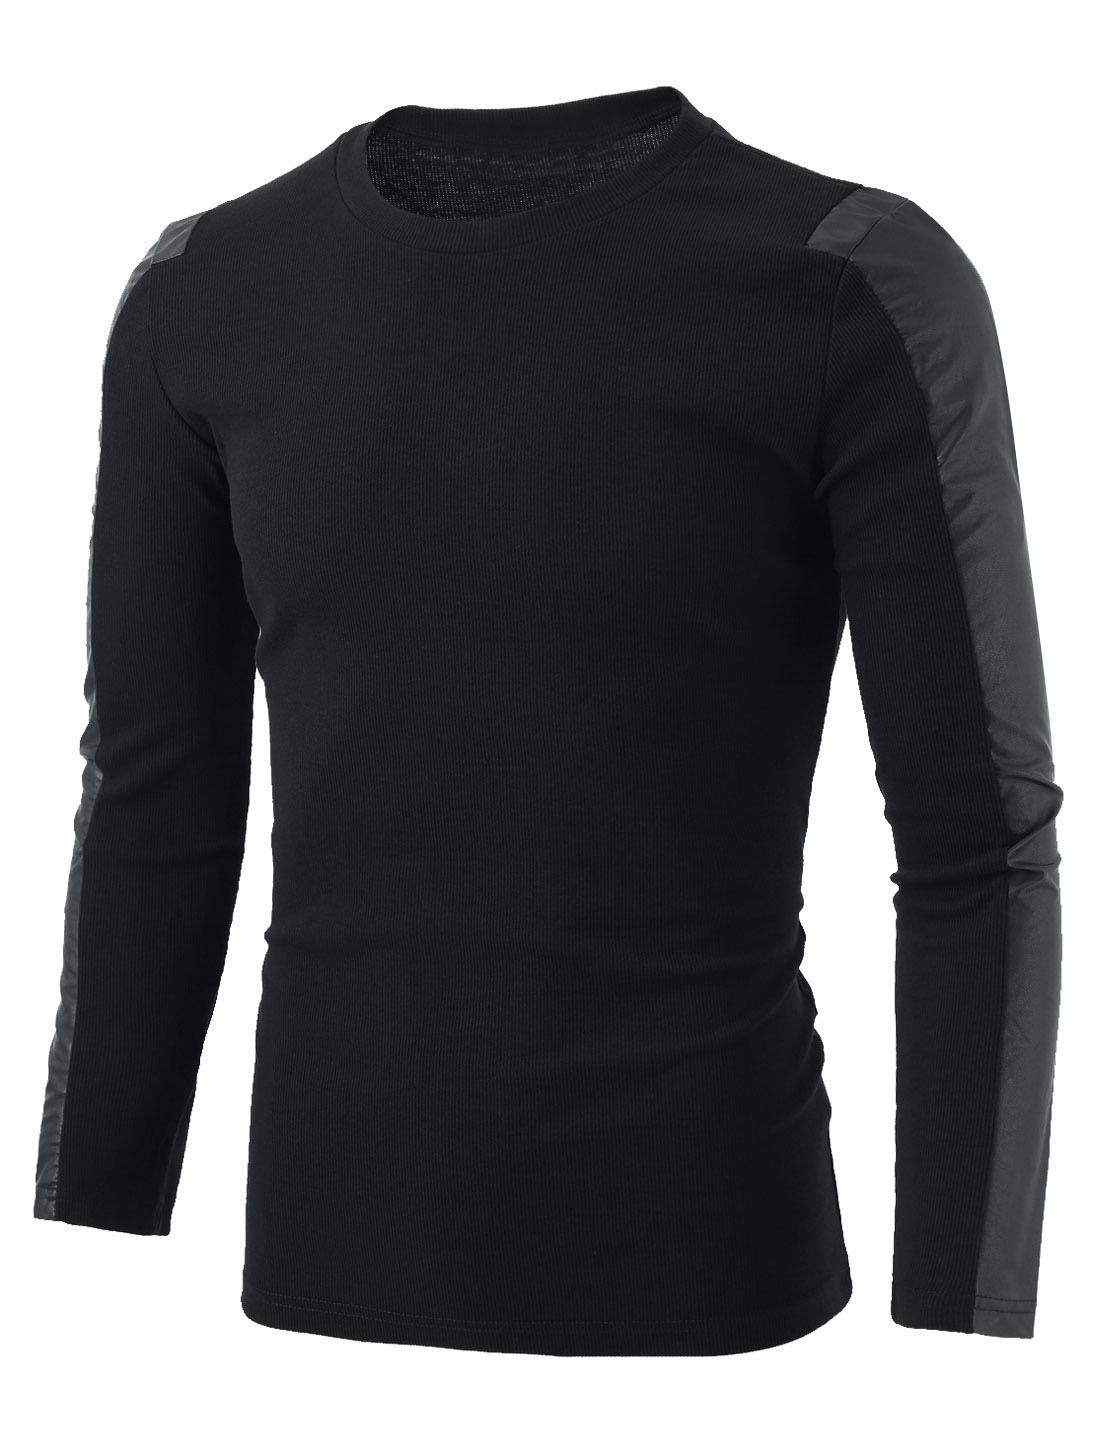 Mens NEW Black Round Neck Ribbing Design Panel Slim Shirt L